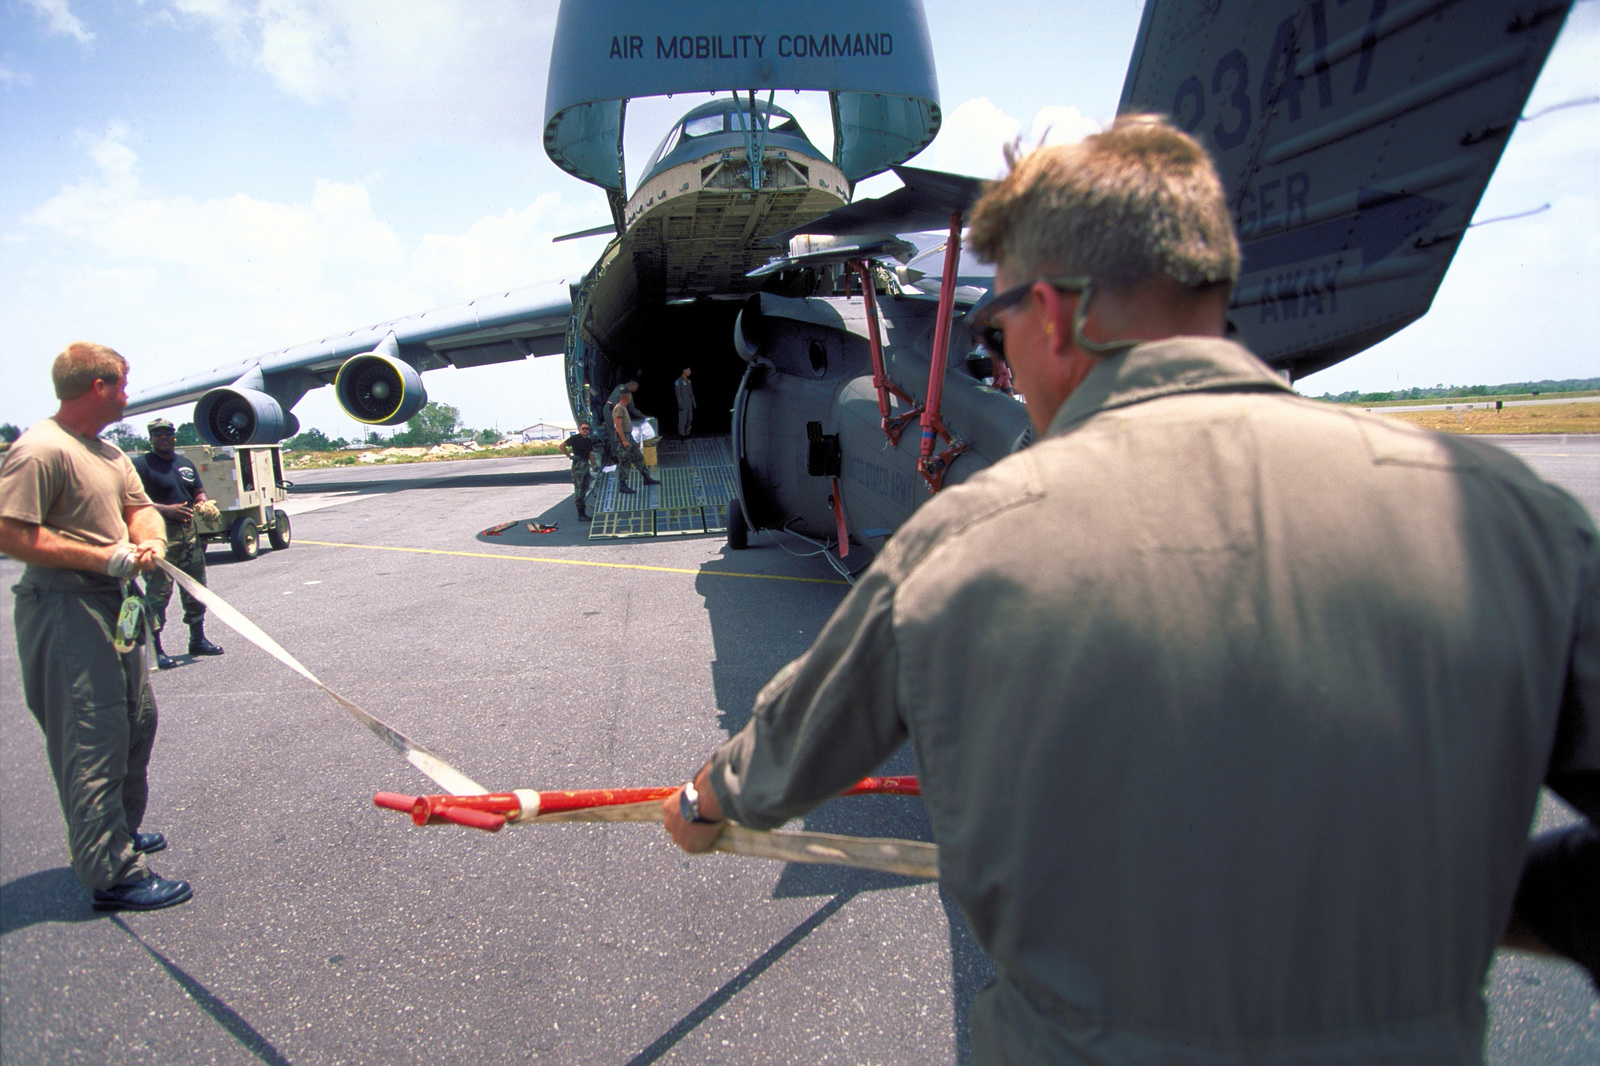 Personnel from ths U.S. Army National Guard's 106th Aviation Unit, Peoria, Ill., prepare to winch one of their UH-60 Black Hawk (Blackhawk) helicopters into C-5 Galaxy cargo bay at Cheddi Jagan International Airport, Timehri, Guyana, for air shipment back to their home base. The 106th participated in the first combined humanitarian and civic assistance exercise conducted between the United States and Guyana. Military personnel from Air Force, Air Force Reserve & National Guard, Army, Army National Guard and Marine Corps participated in the exercise which included engineering and medical readiness training